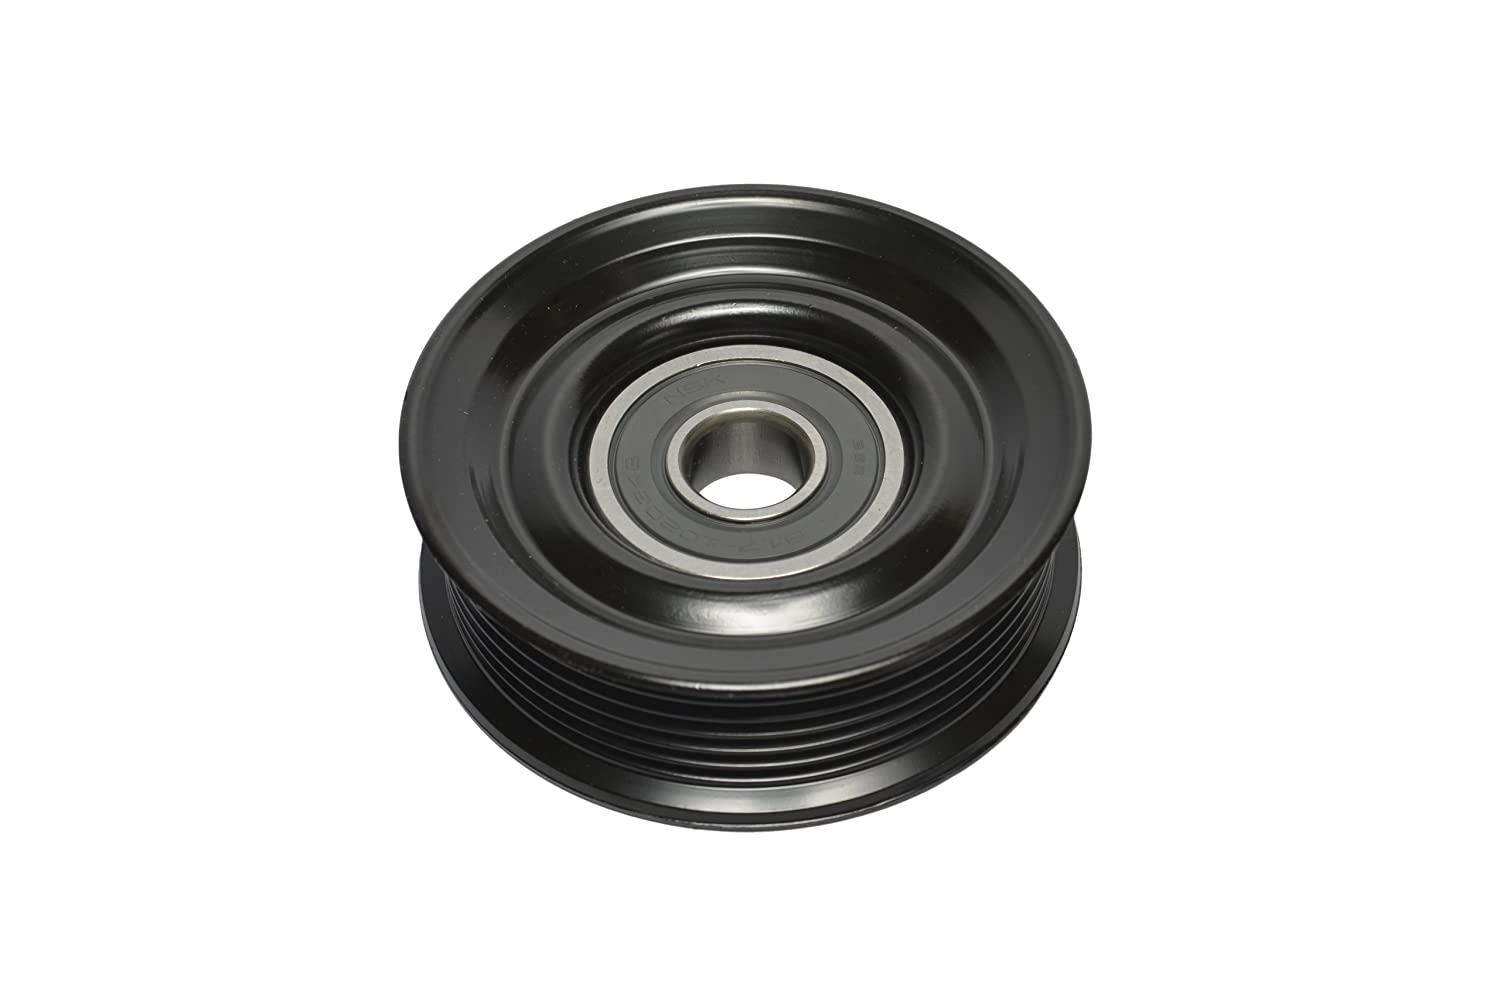 Continental Elite 49123 Accu-Drive Pulley